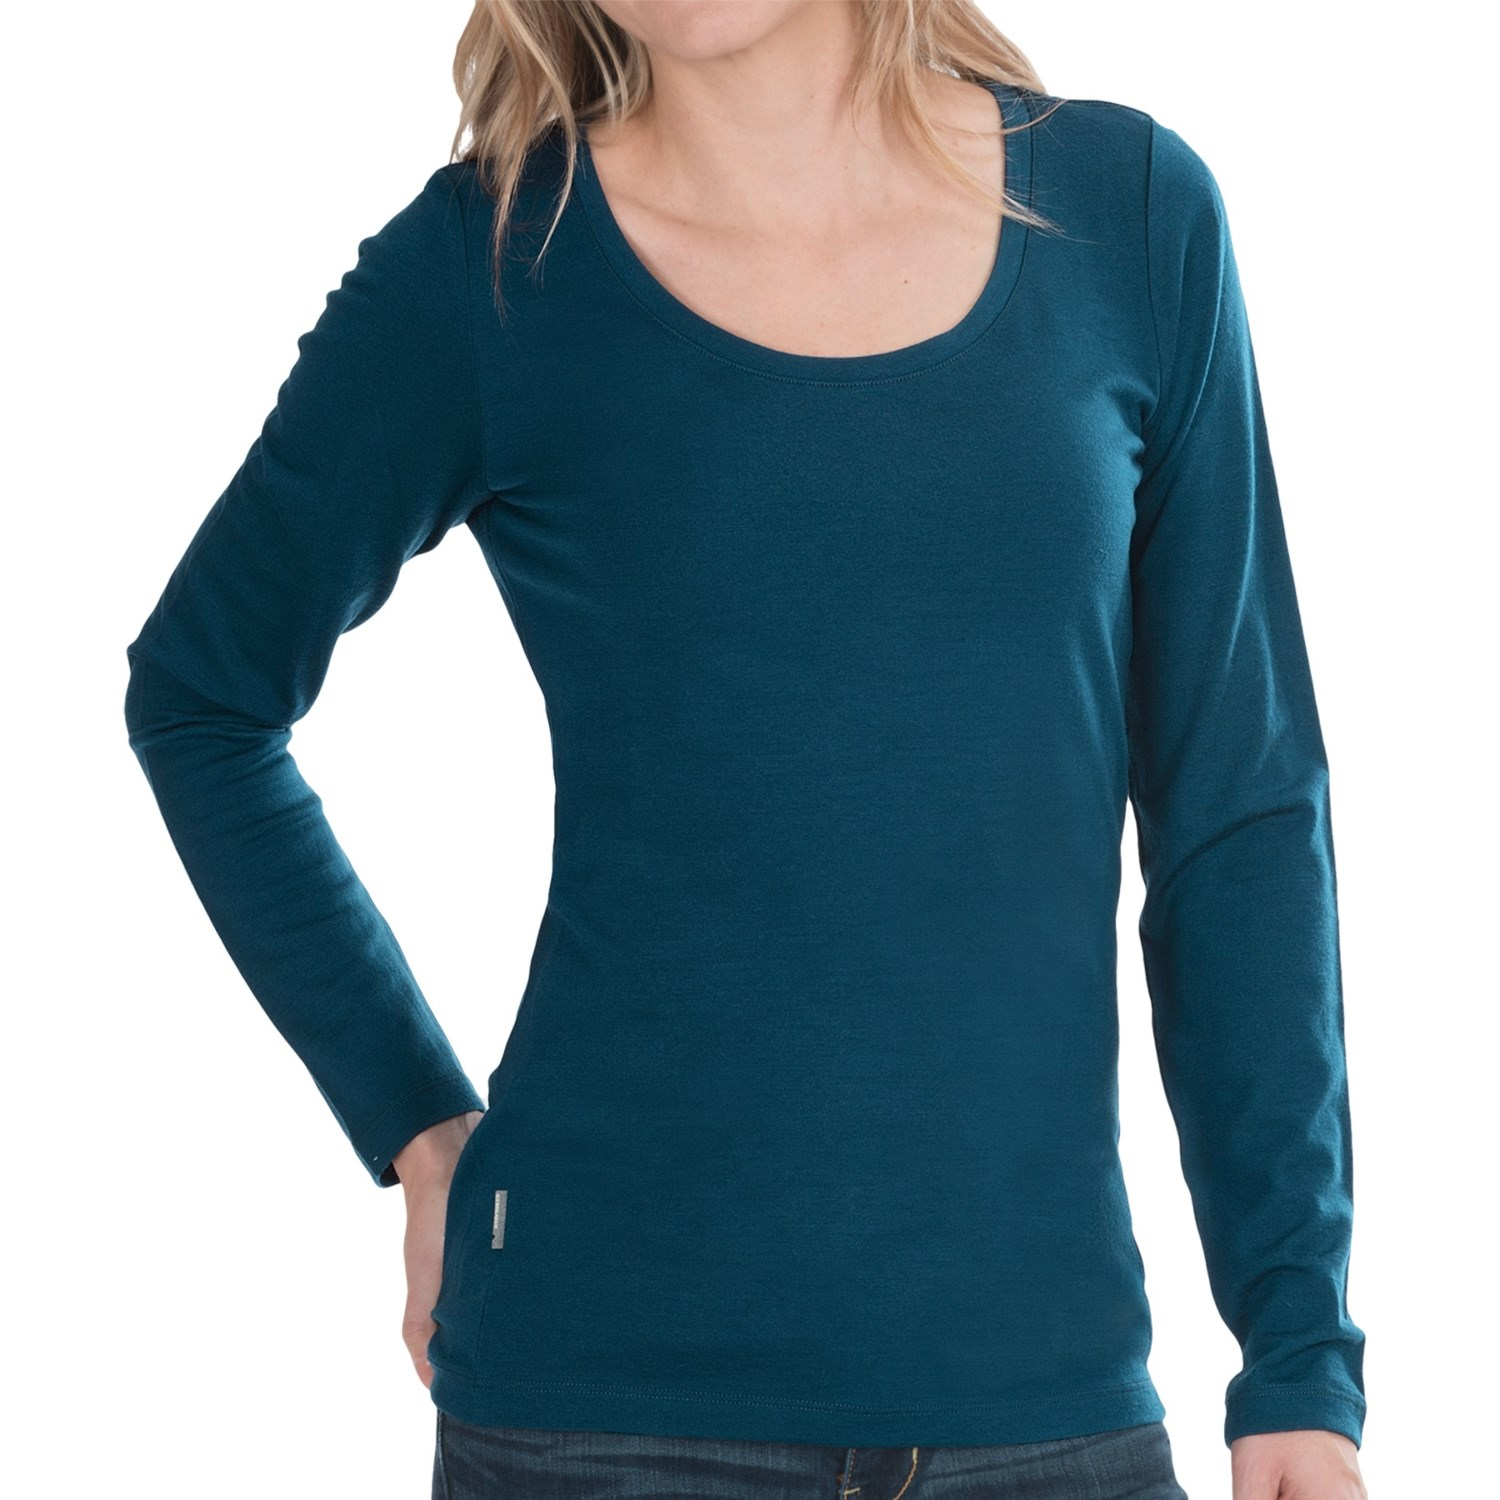 Icebreaker 200 crush shirt merino wool upf 30 long for Merino wool shirt womens